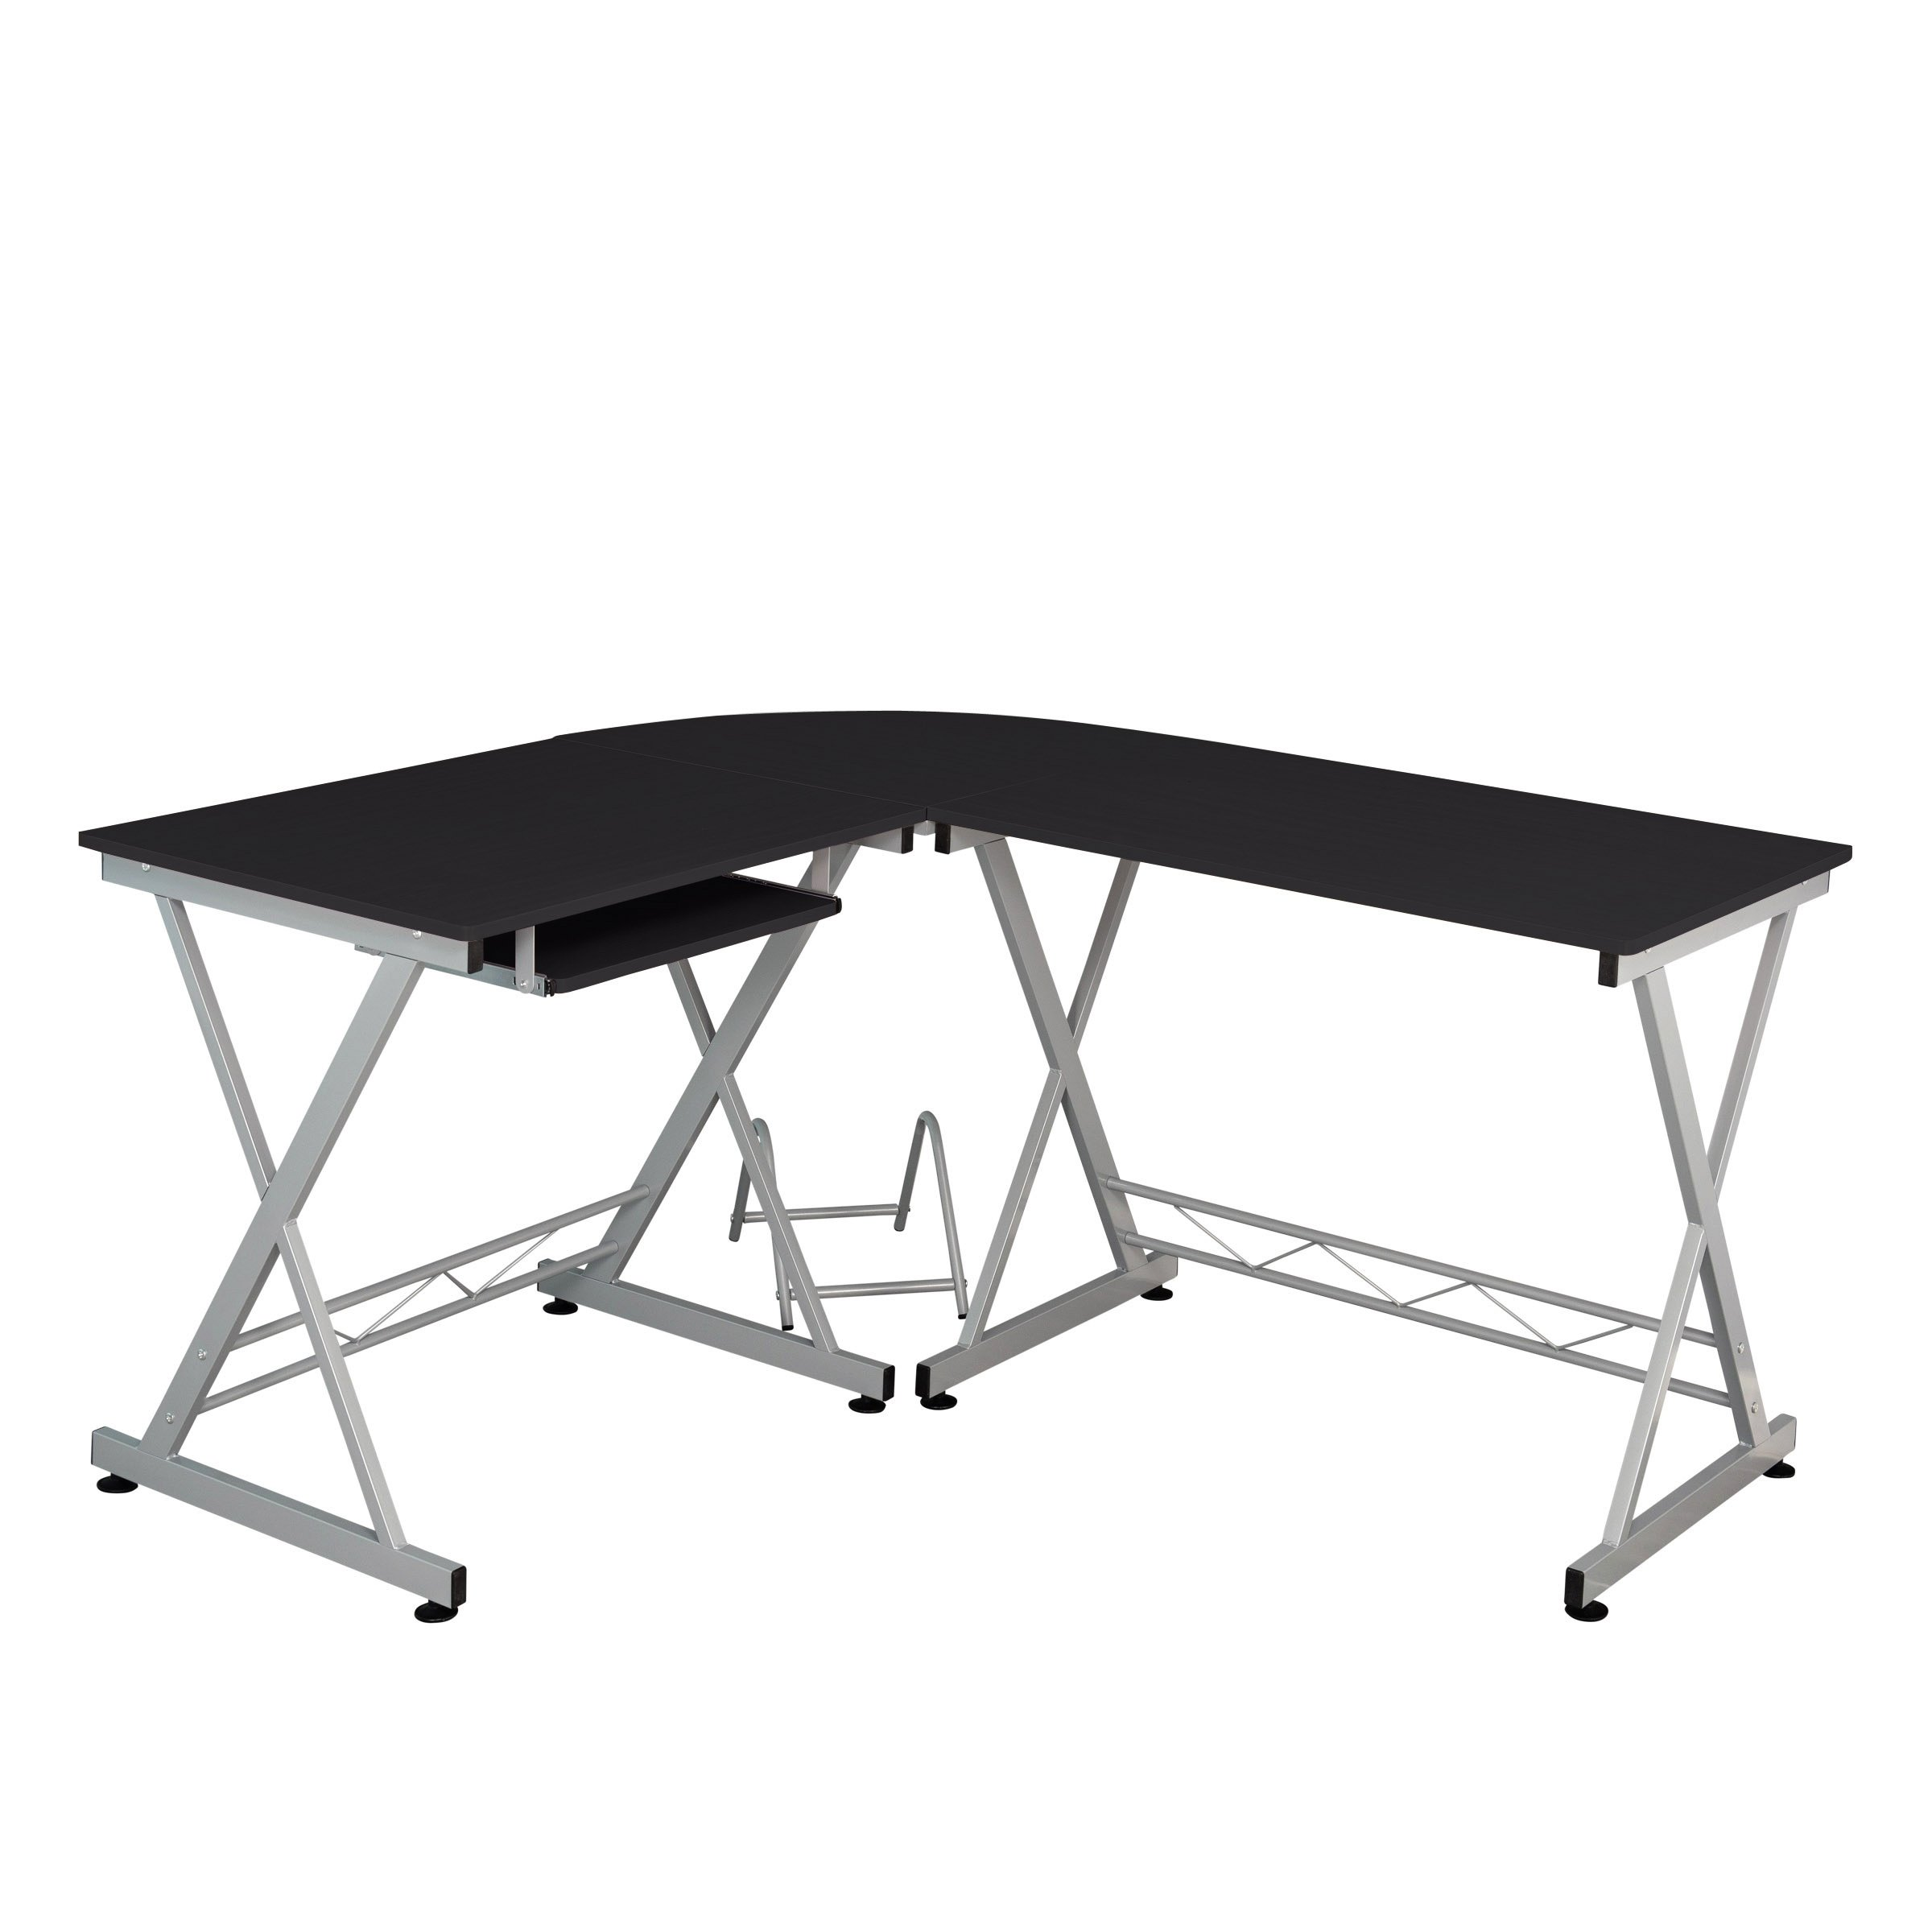 Fineboard Home Office Corner Desk, L-Shaped, Black/Silver